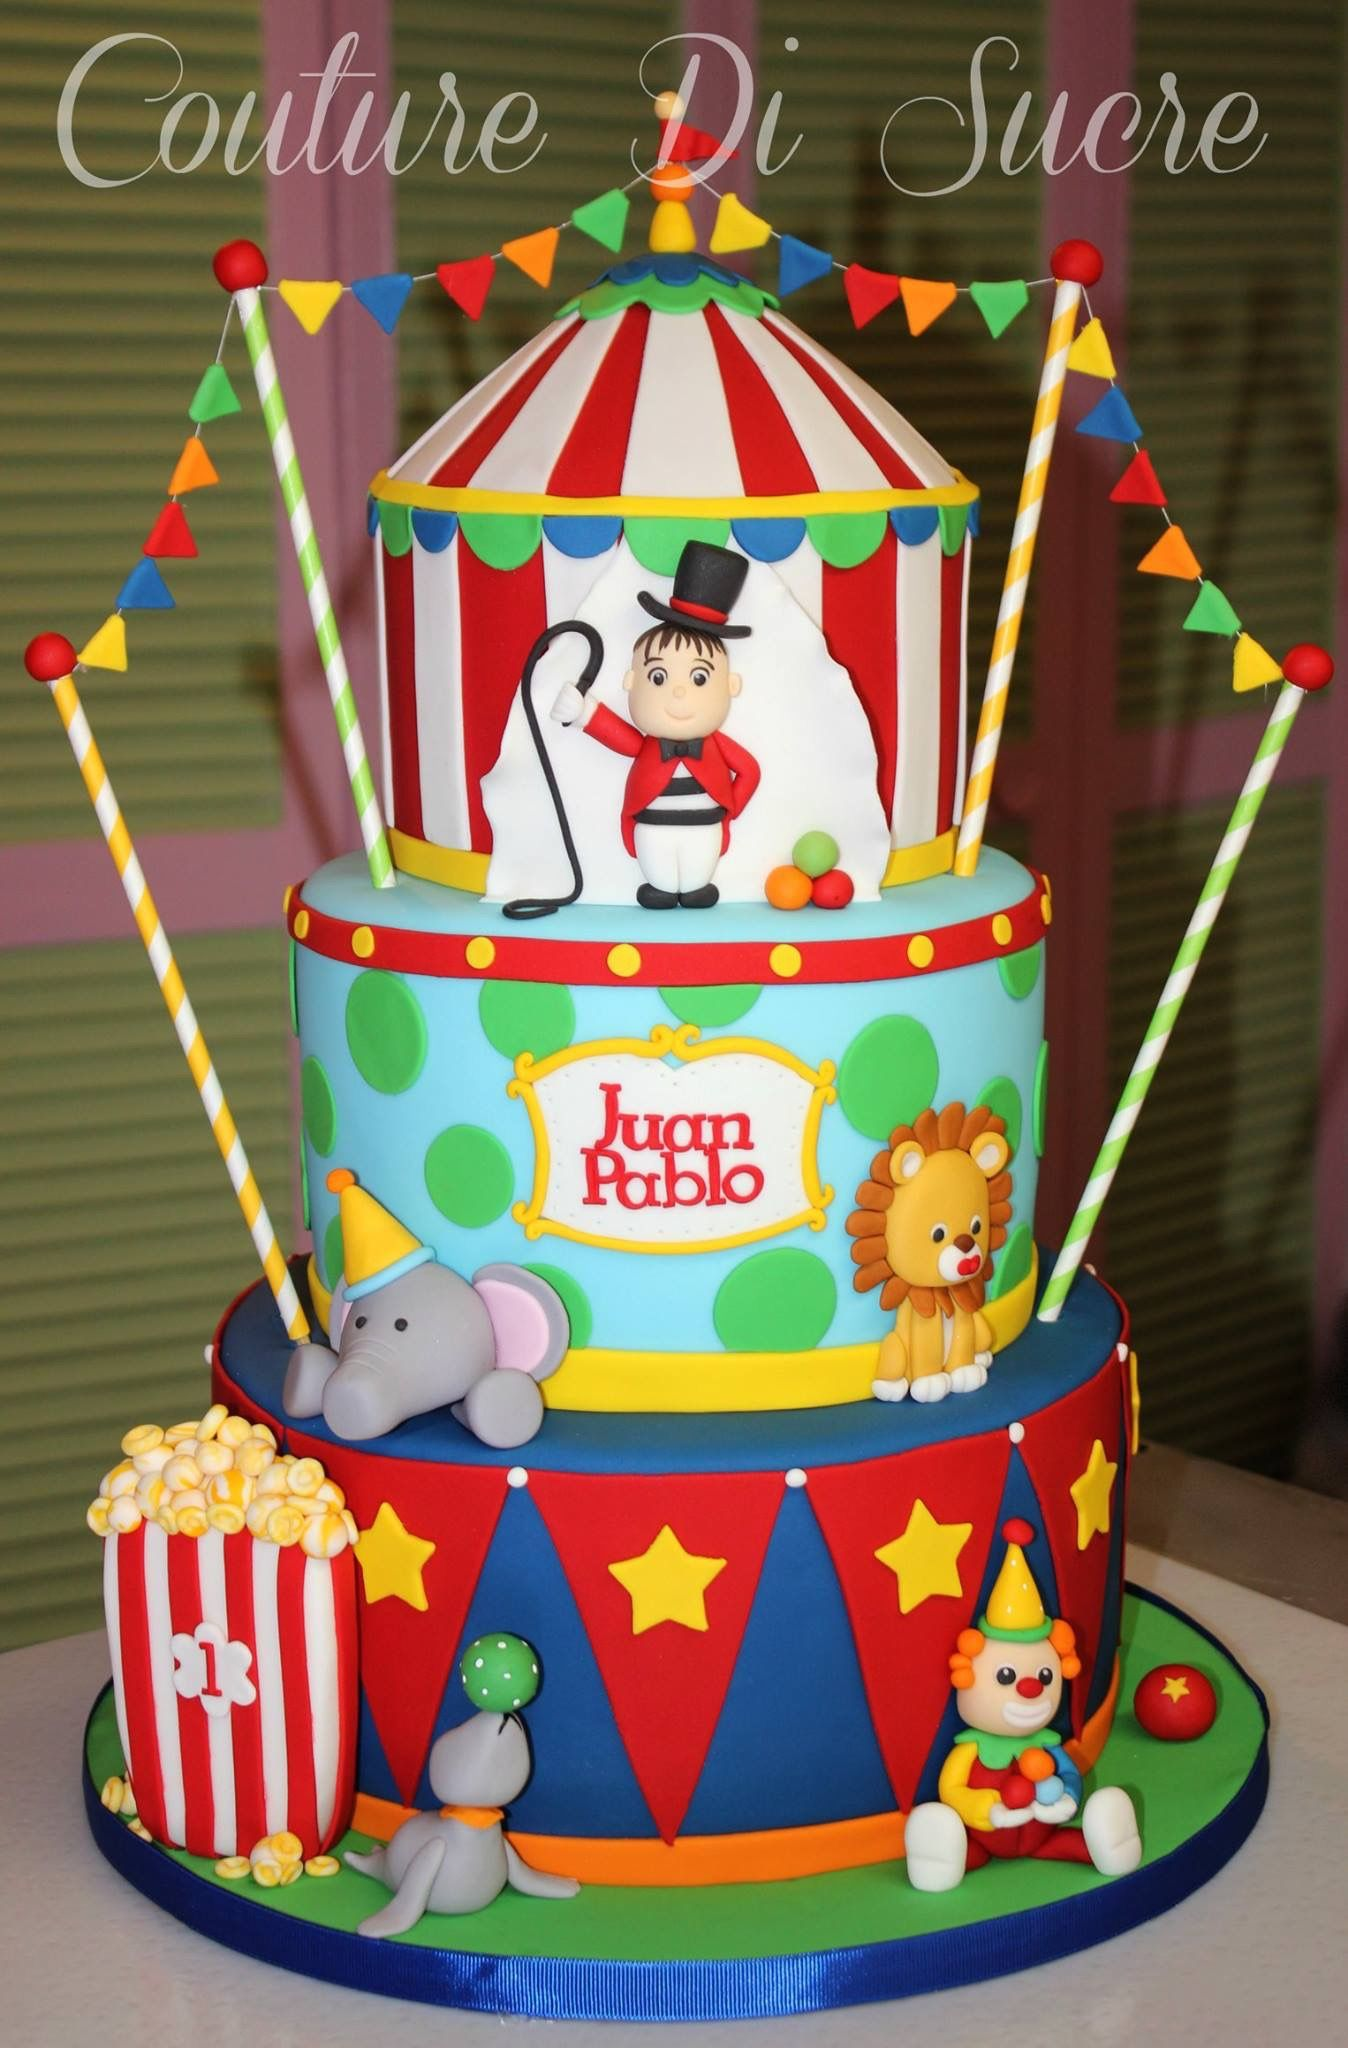 parties pinterest catchmyparty party birthday decorations carnival aiden s circus best ideas images decor on